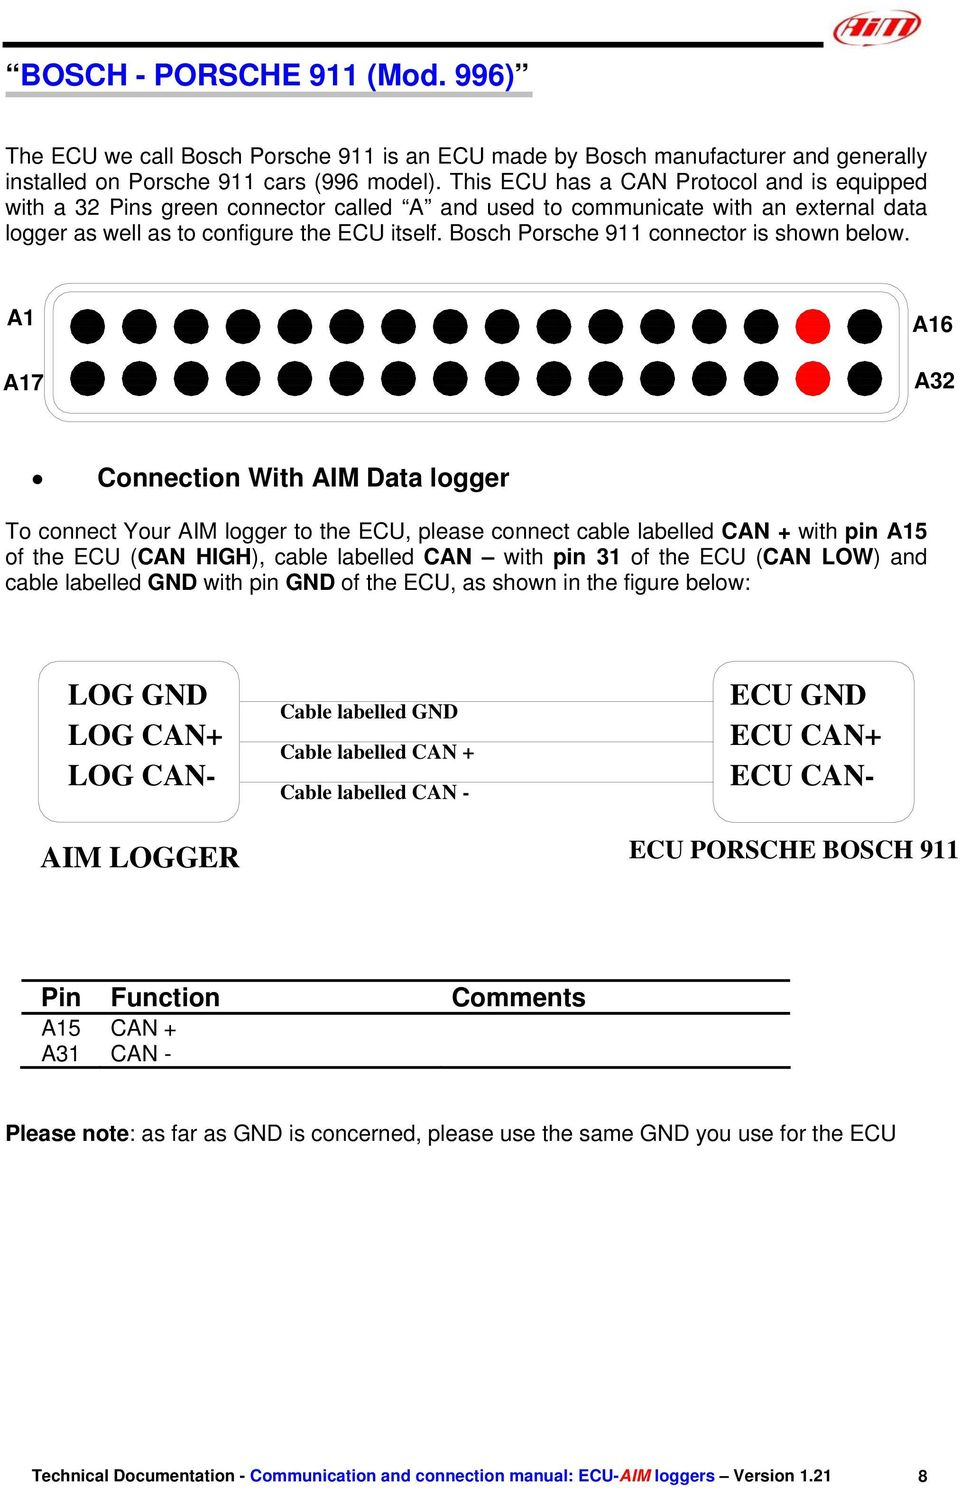 Ecu Communication Protocol General Information Pdf Bmw 20 Pin Connector Pinout On Ide To Usb Cable Wiring Diagram Bosch Porsche 911 Is Shown Below